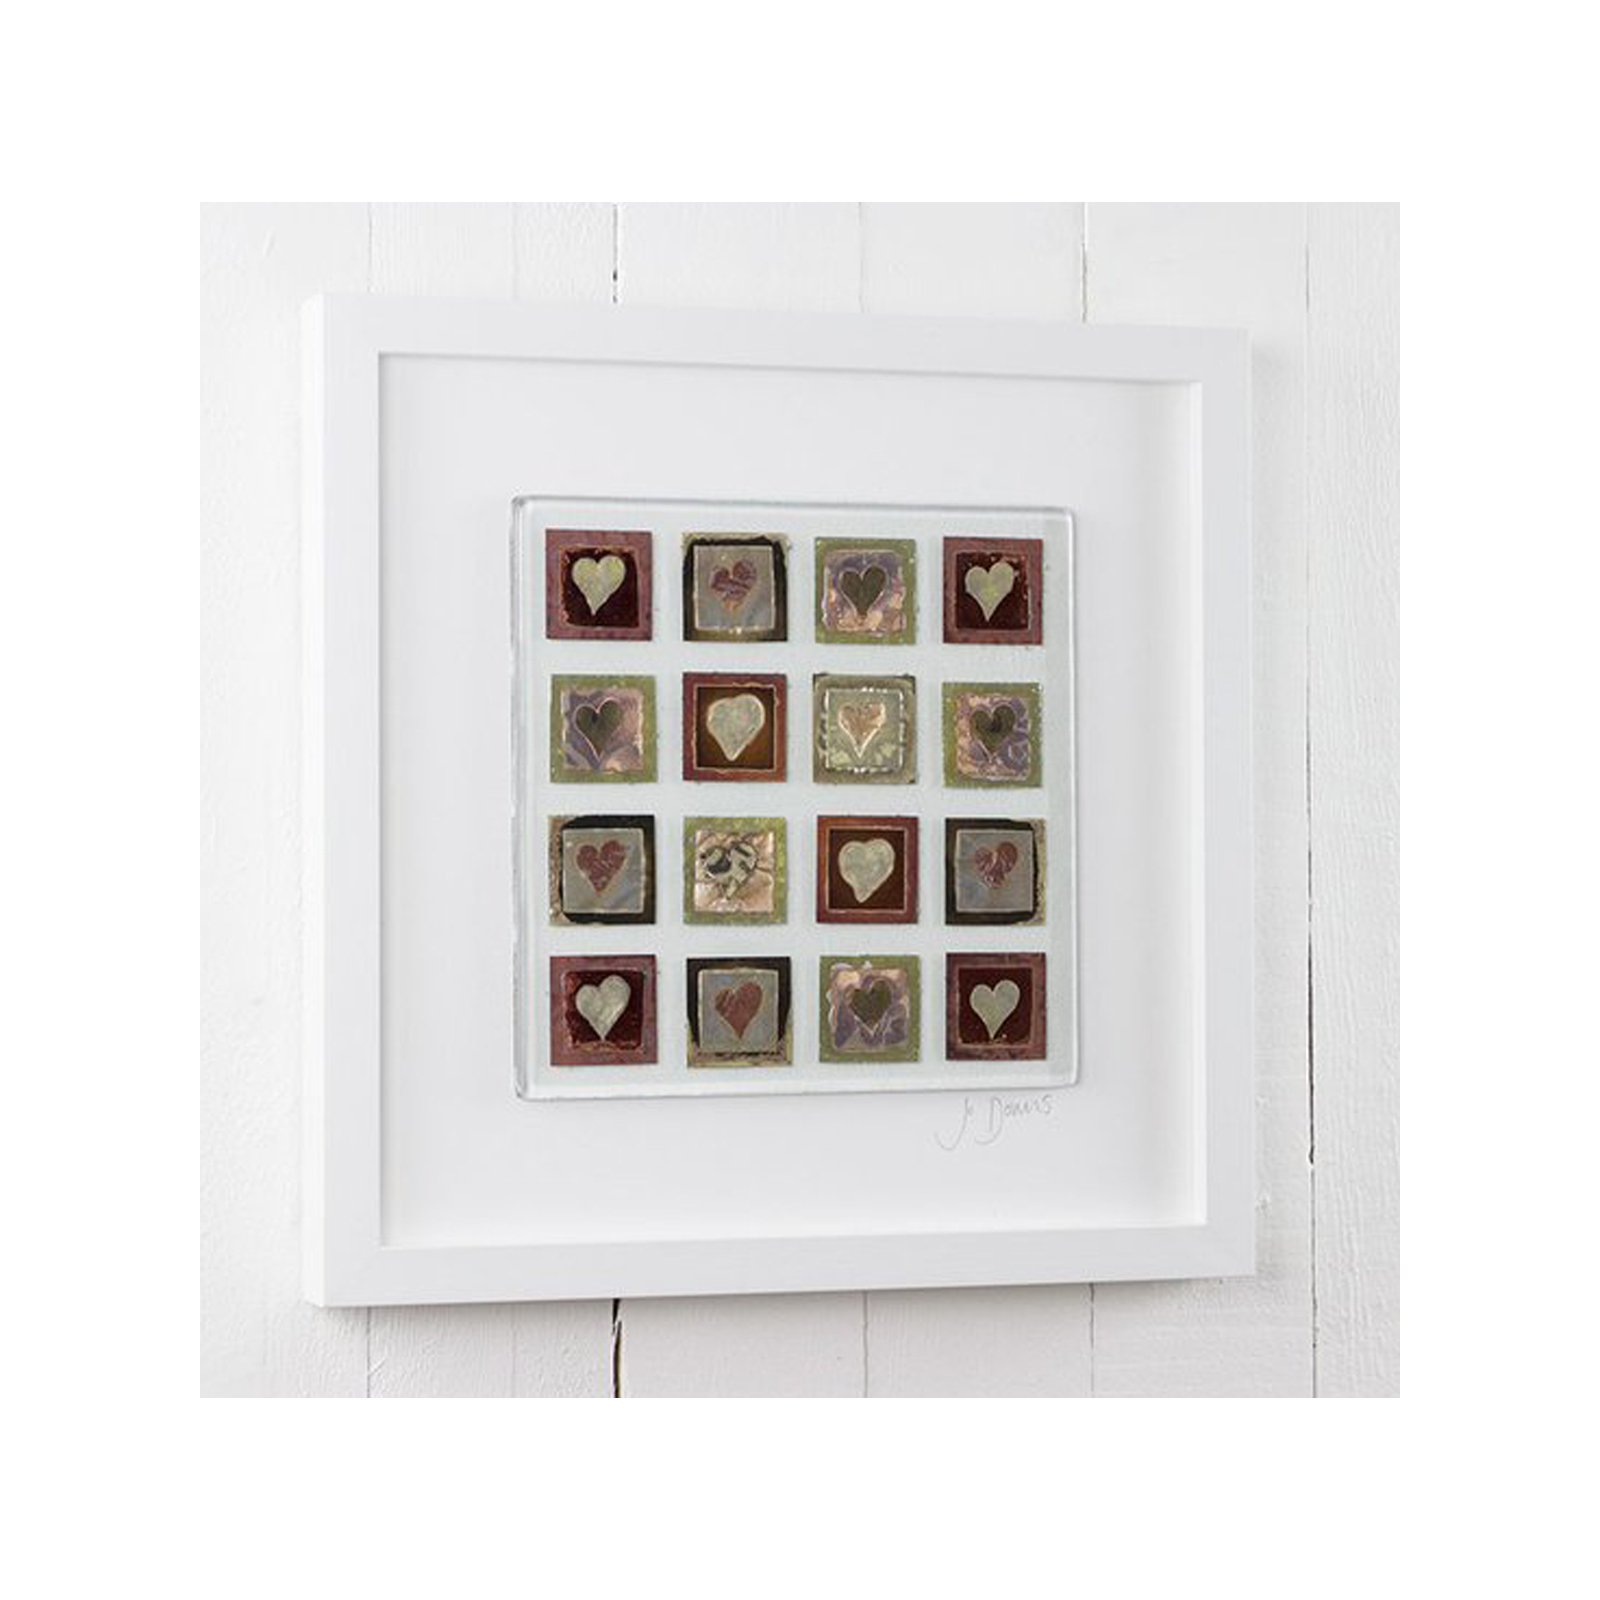 Morwenna Heart Large Framed Glass Art by Jo Downs